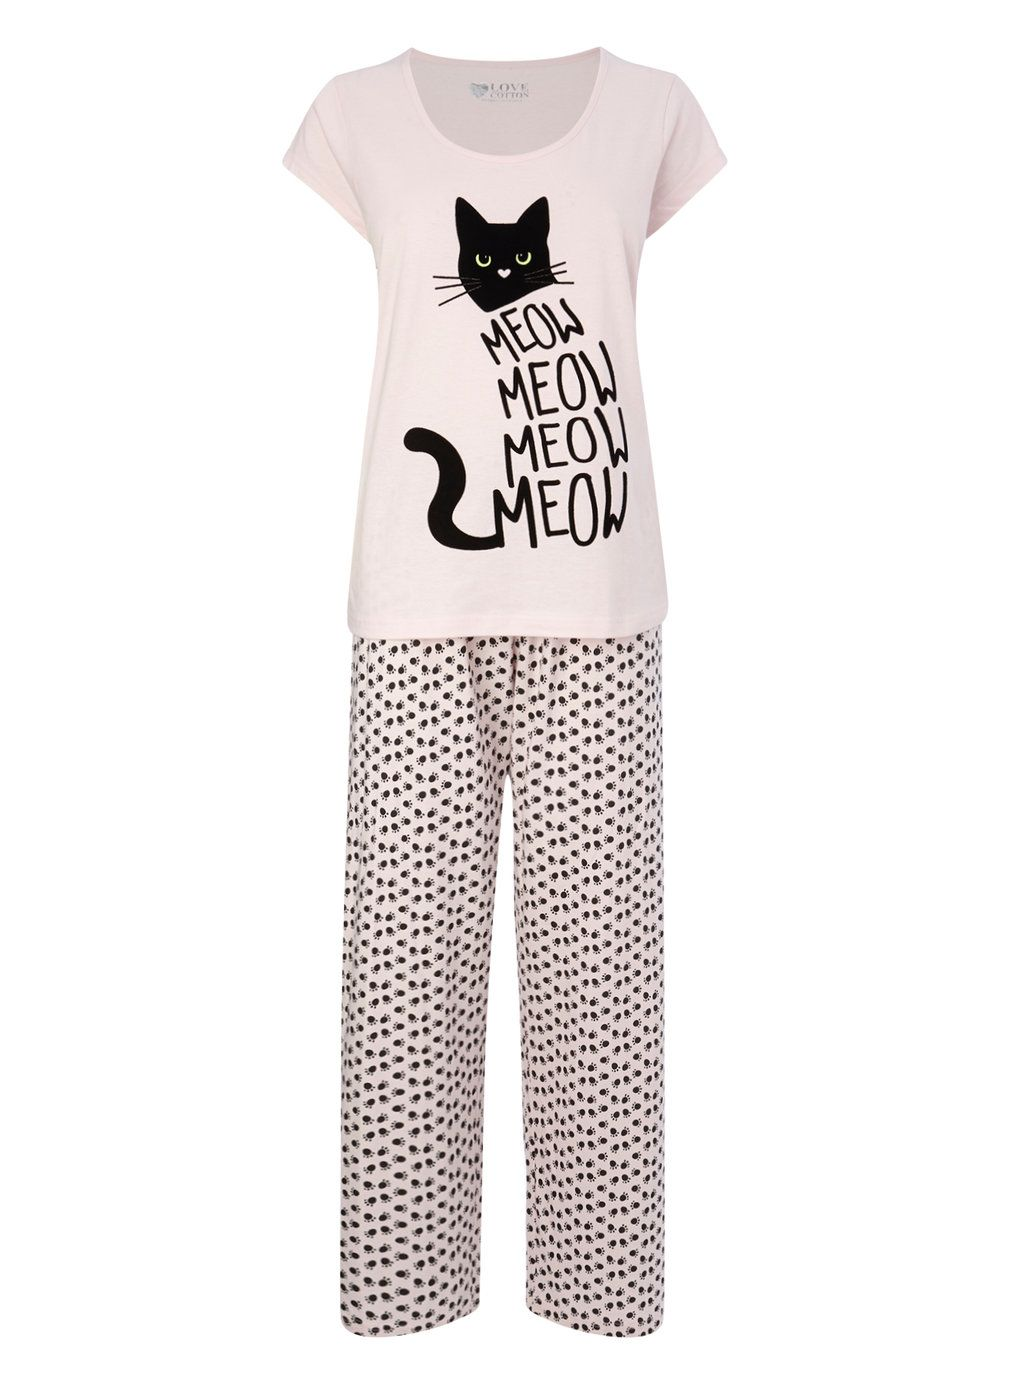 Multi Pink Meow Cat Pyjamas - pyjamas - nightwear - Women- BHS Girls Pajamas  8505edbd7